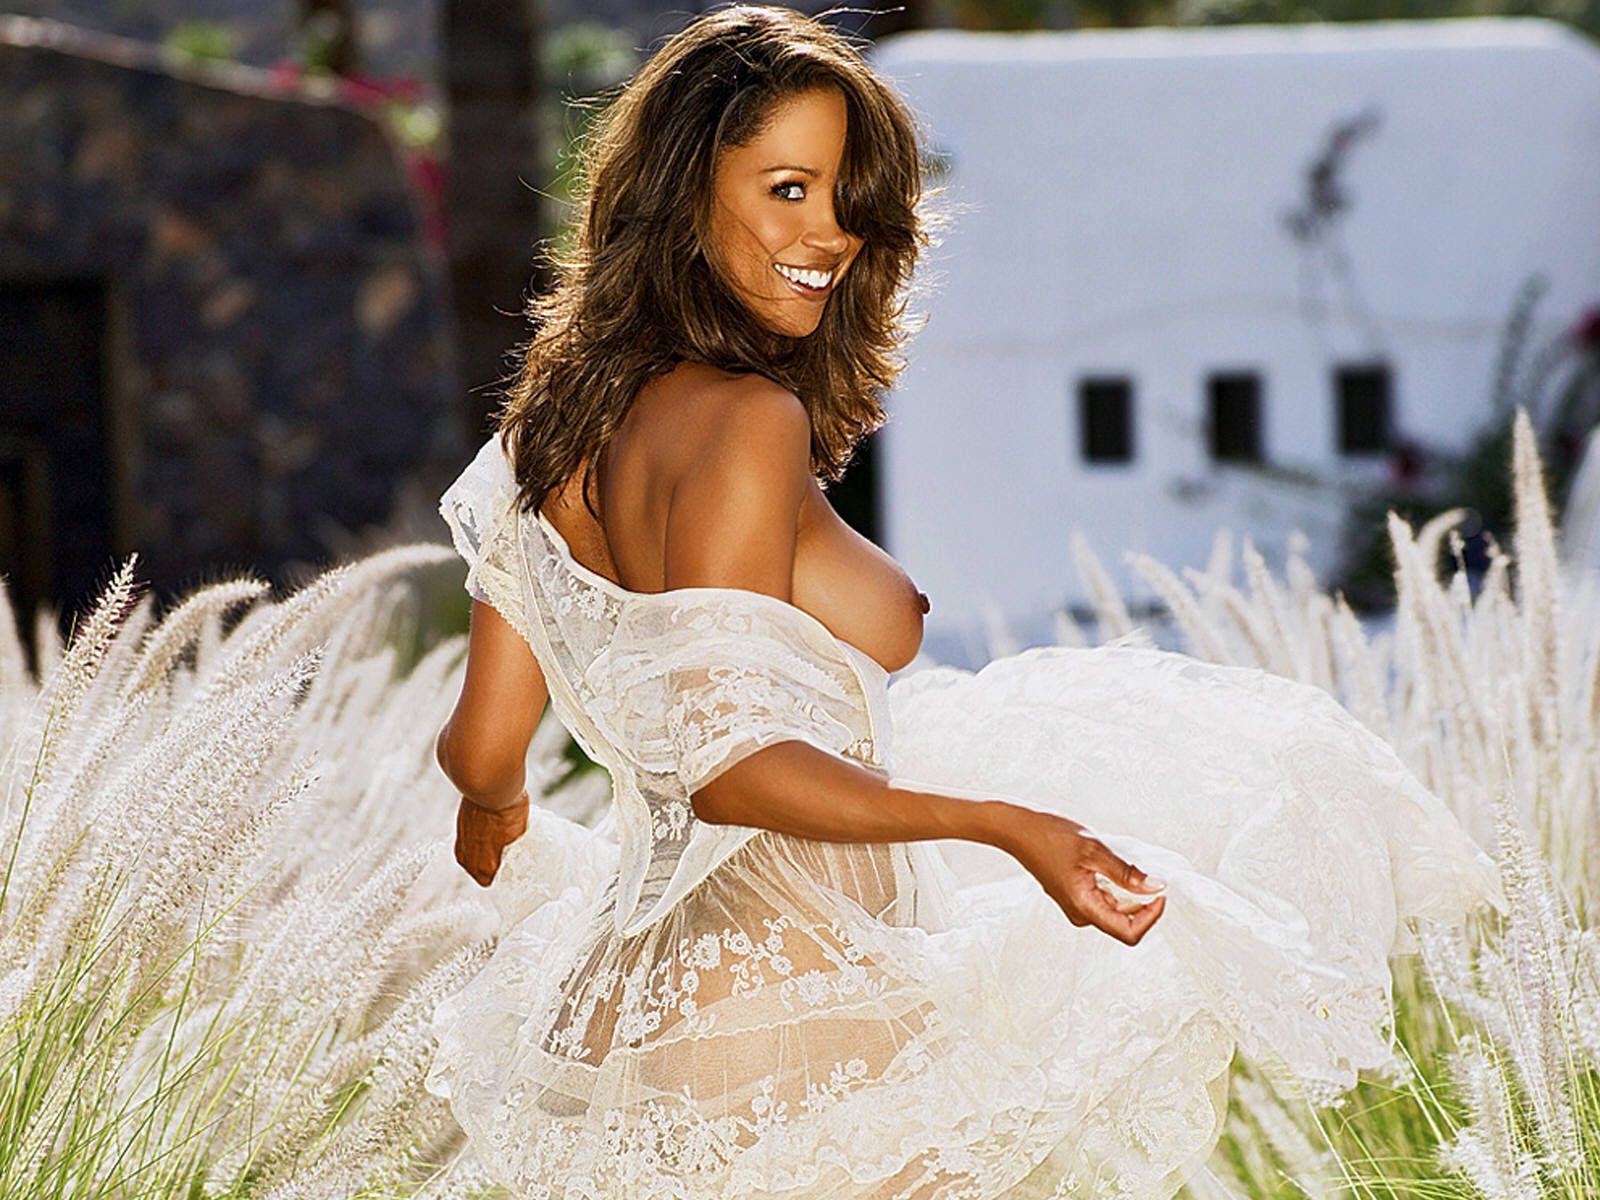 http://static.cinemagia.ro/img/db/actor/01/02/76/stacey-dash-135120l.jpg